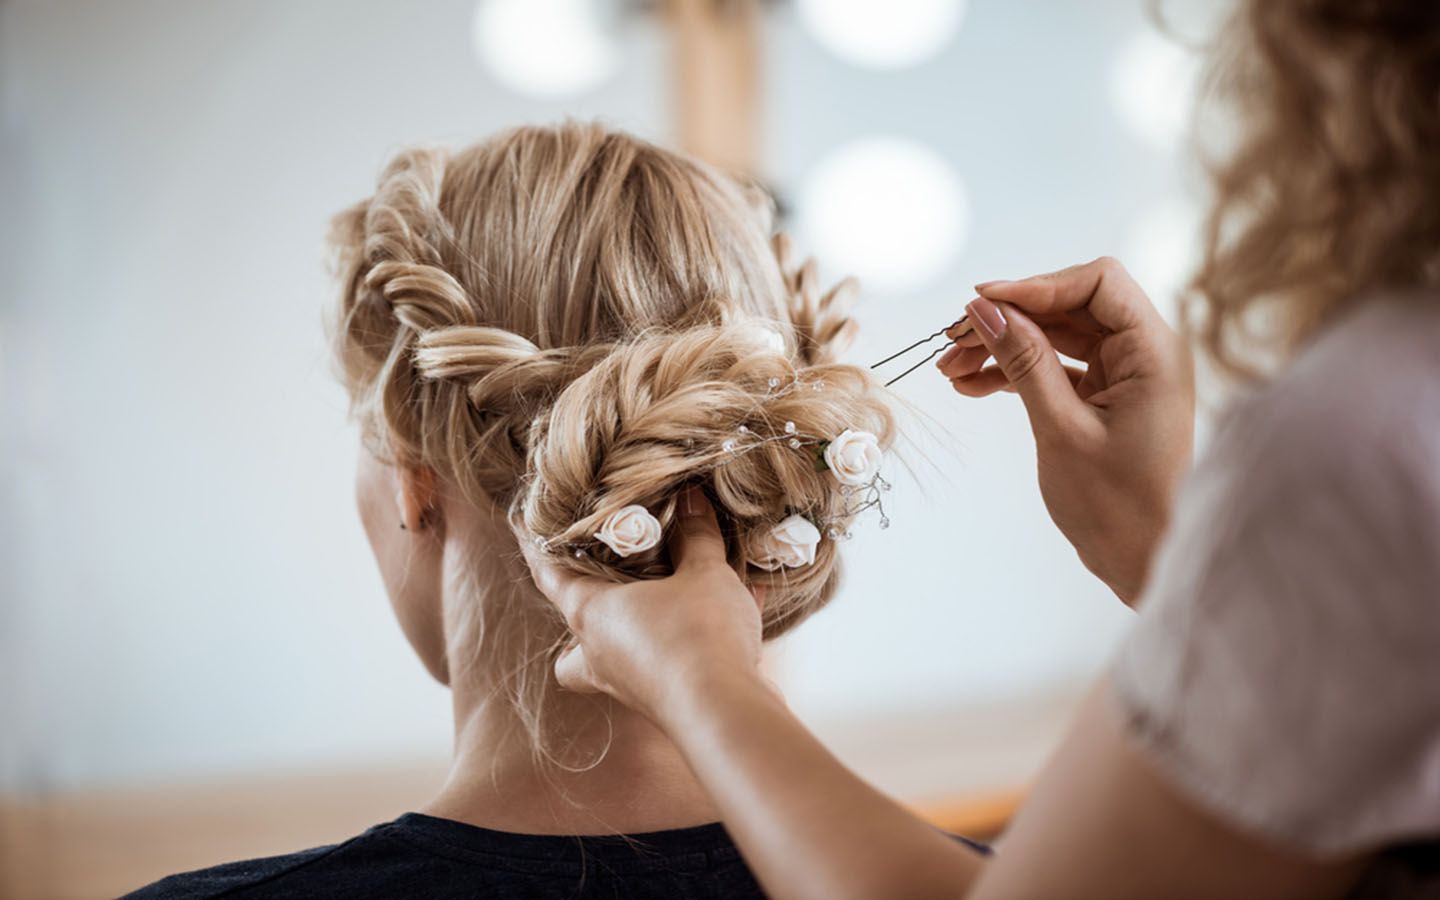 hairstyles in Abu Dhabi salons